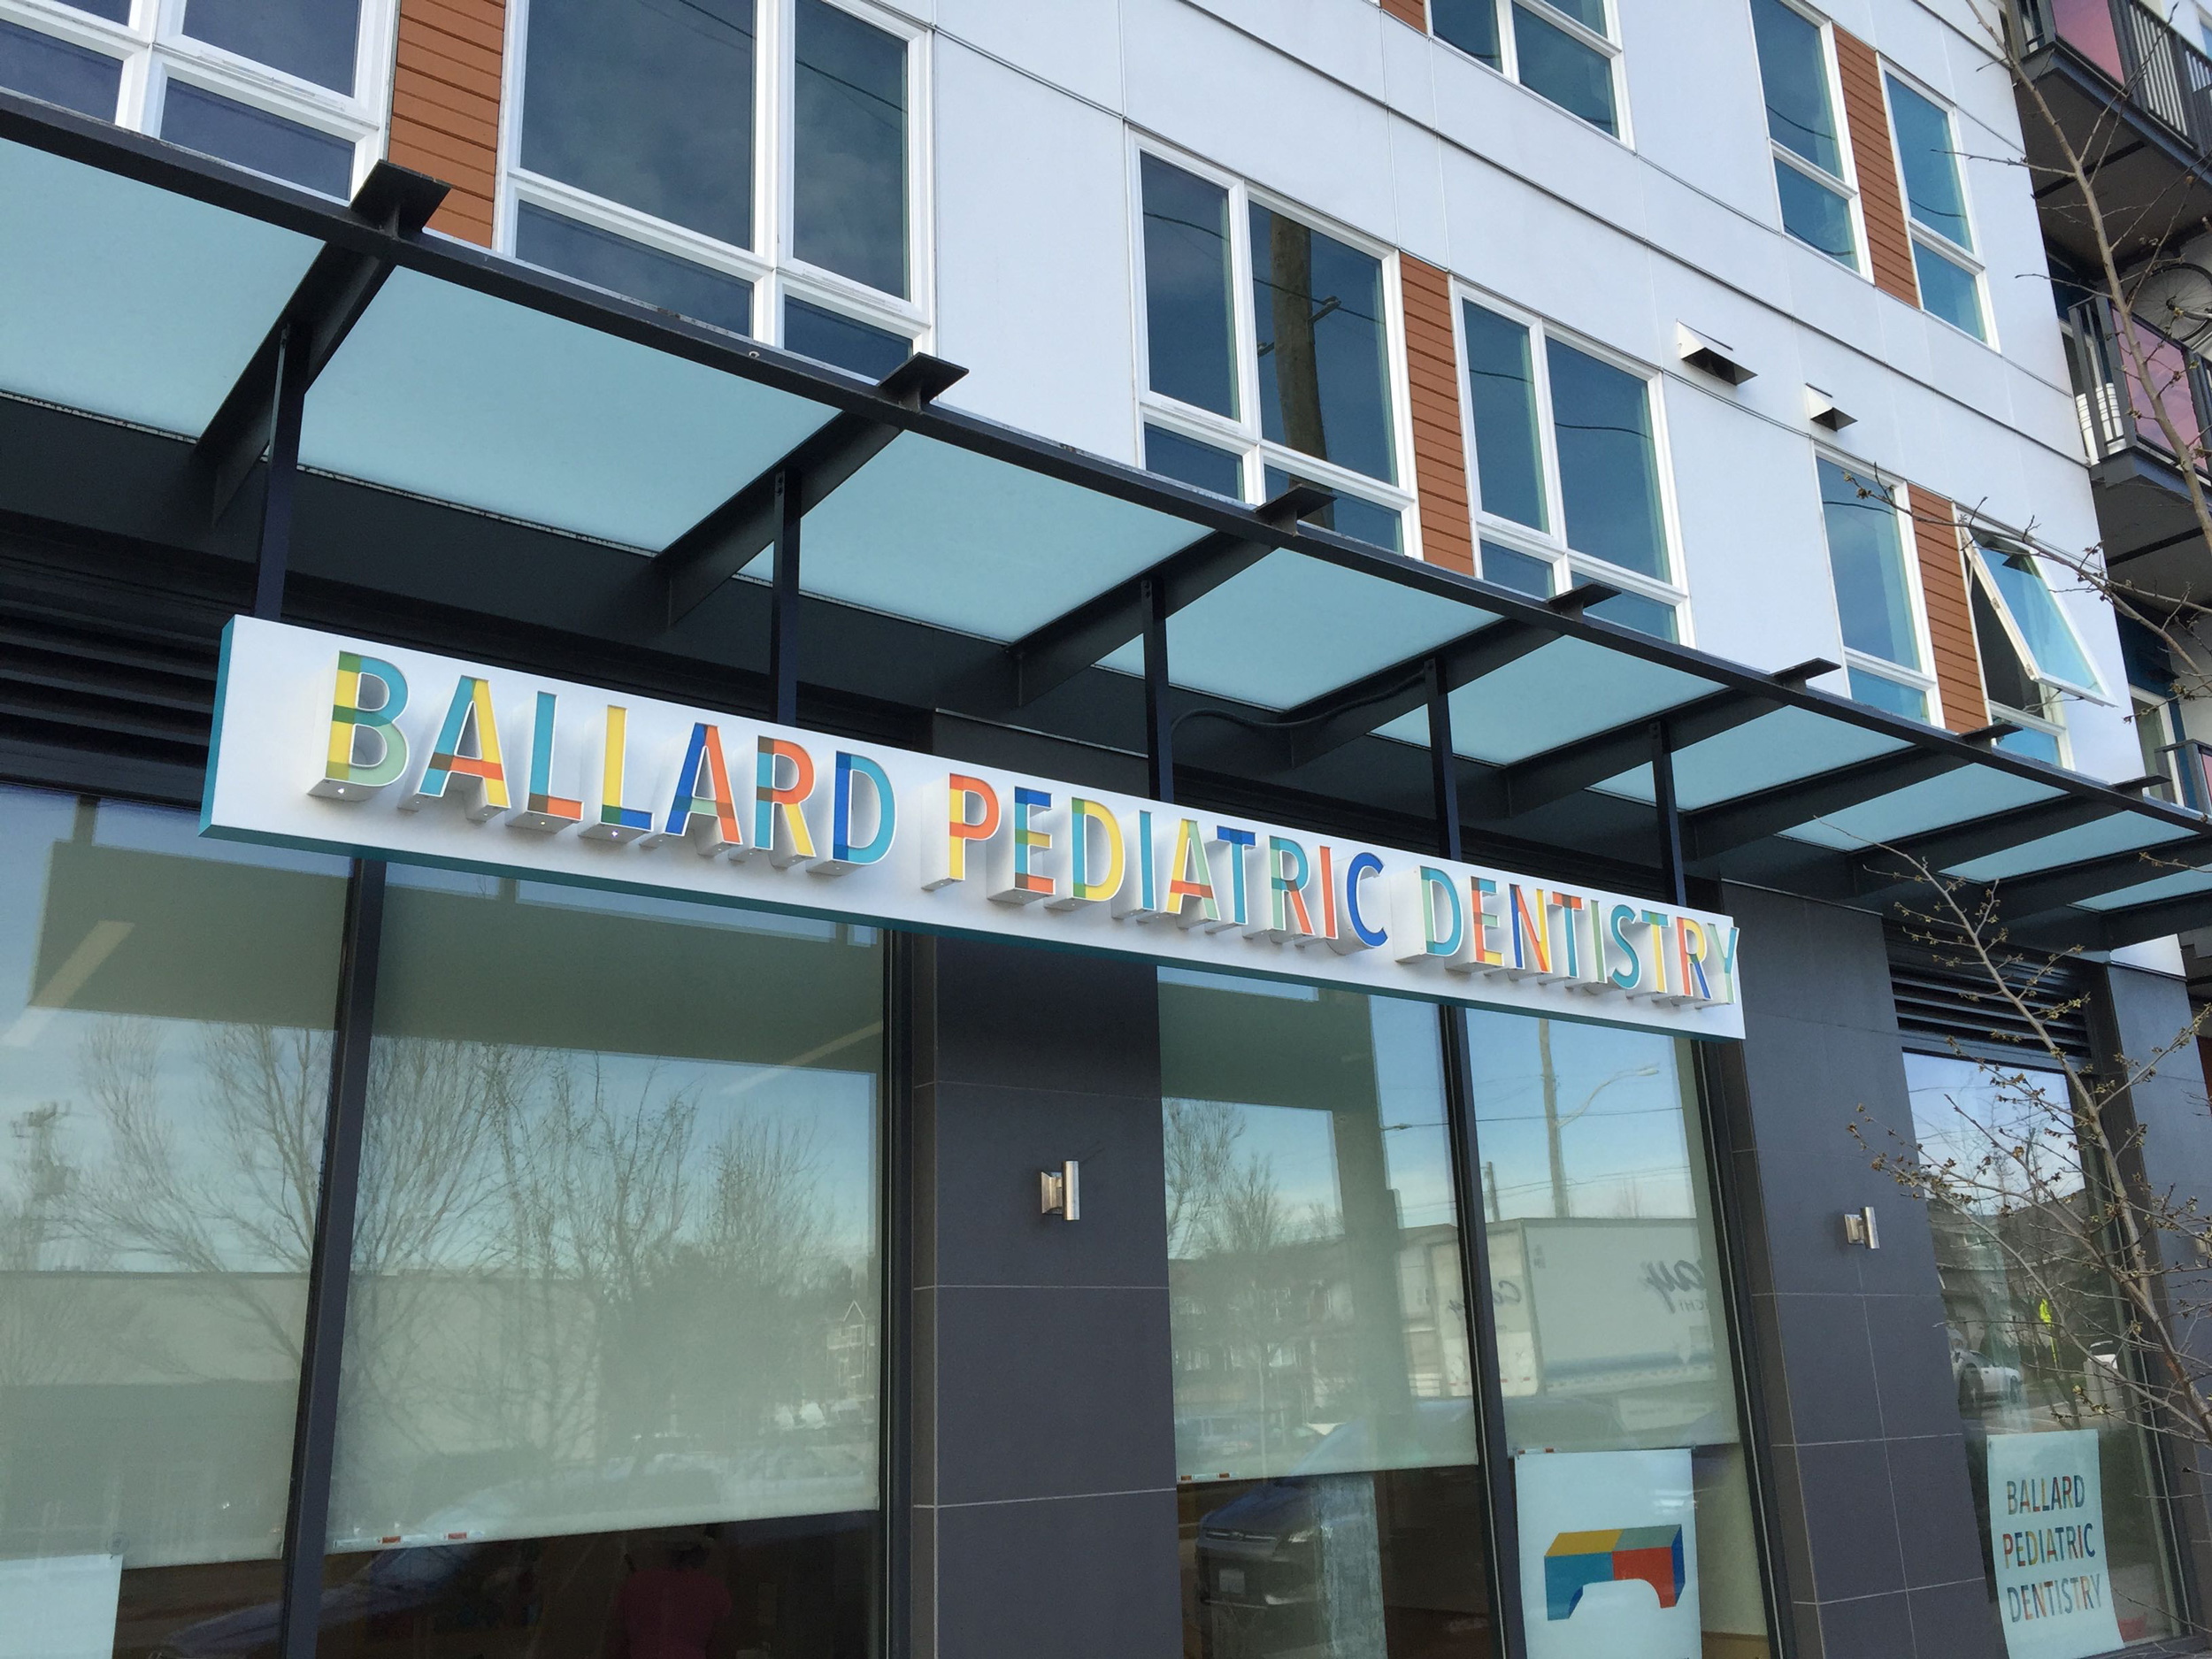 Ballard Pediatric Dentistry